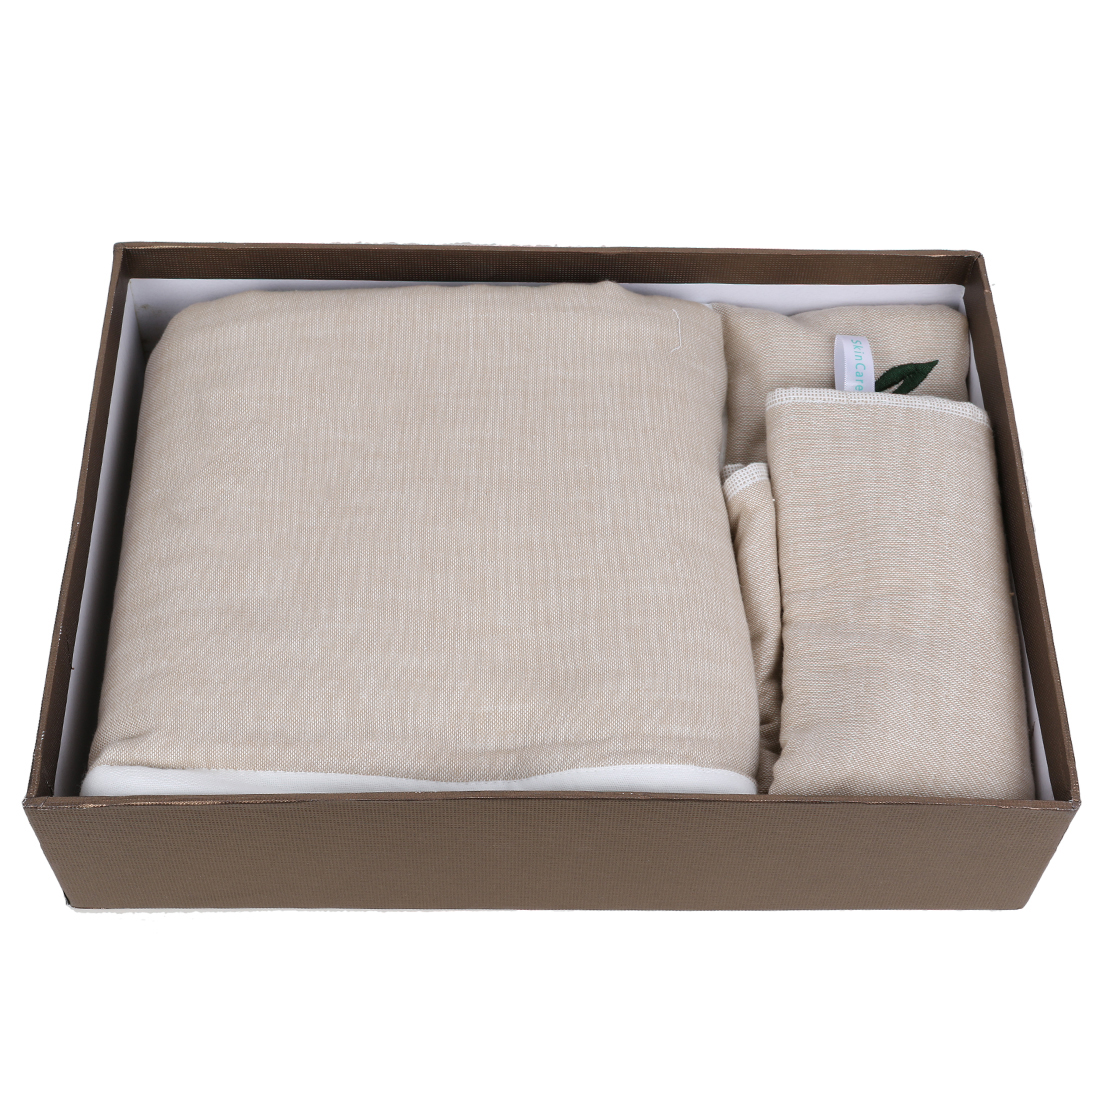 Super Soft Pure Cotton Hand Towel Towels Sets Beige